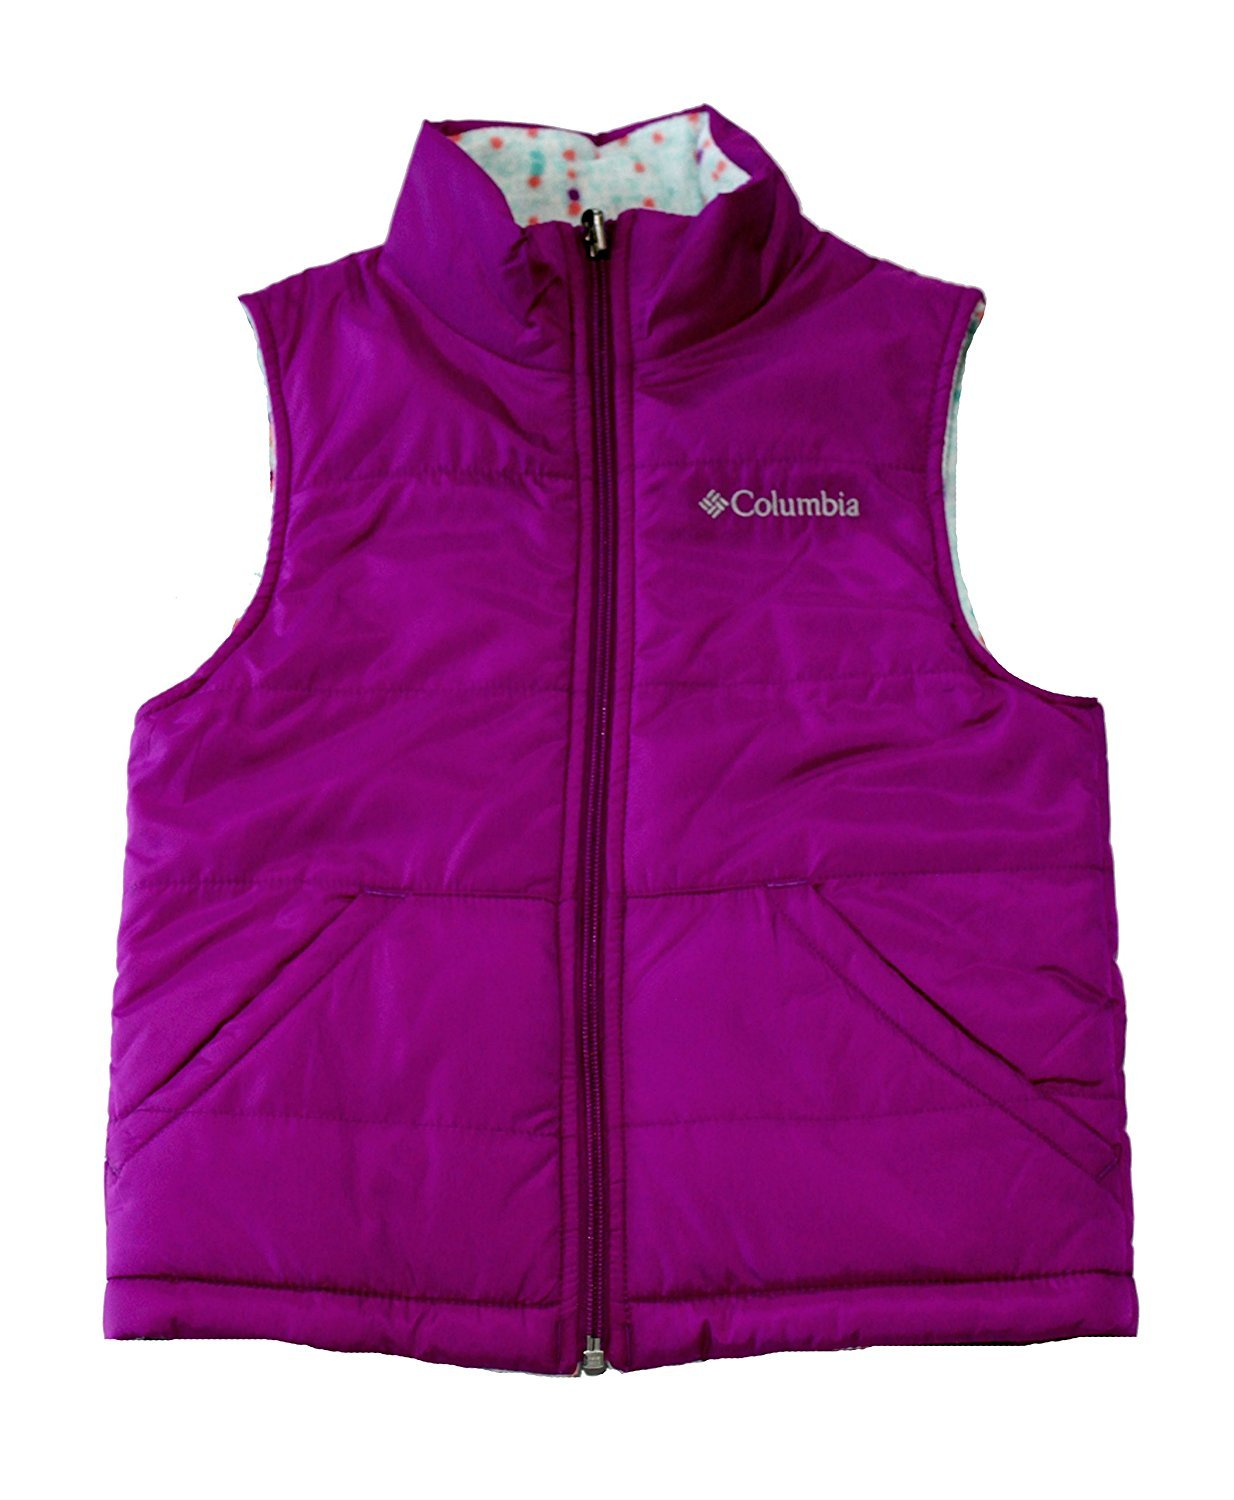 Columbia Youth Girls Ice Chips II Reversible Fleece Puffer Vest (XL 18) by Columbia